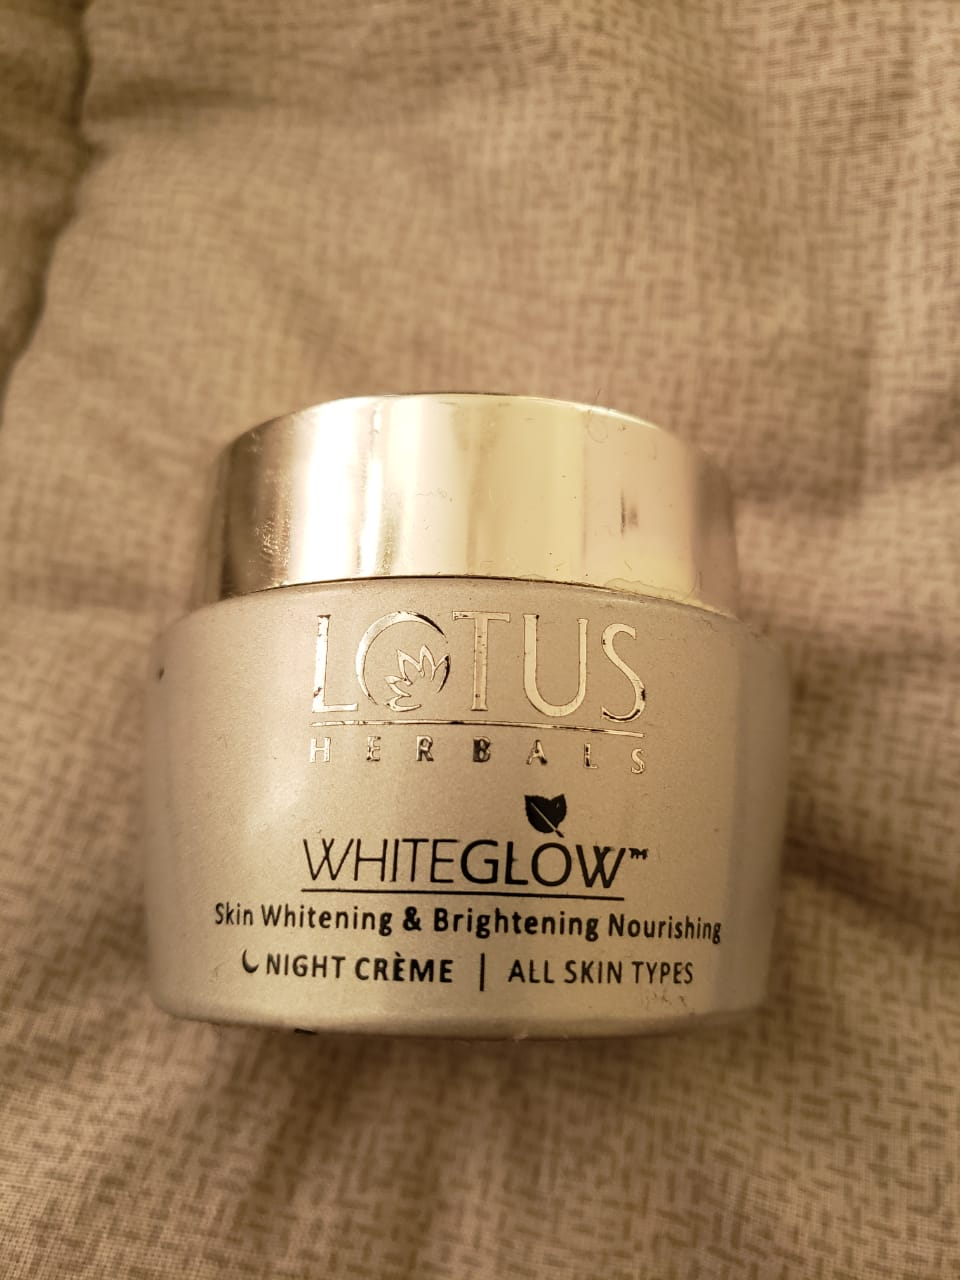 Lotus Herbals WhiteGlow Skin Whitening & Brightening Nourishing Night Creme-Miusturises and hydrates skin!-By poonam_kakkar